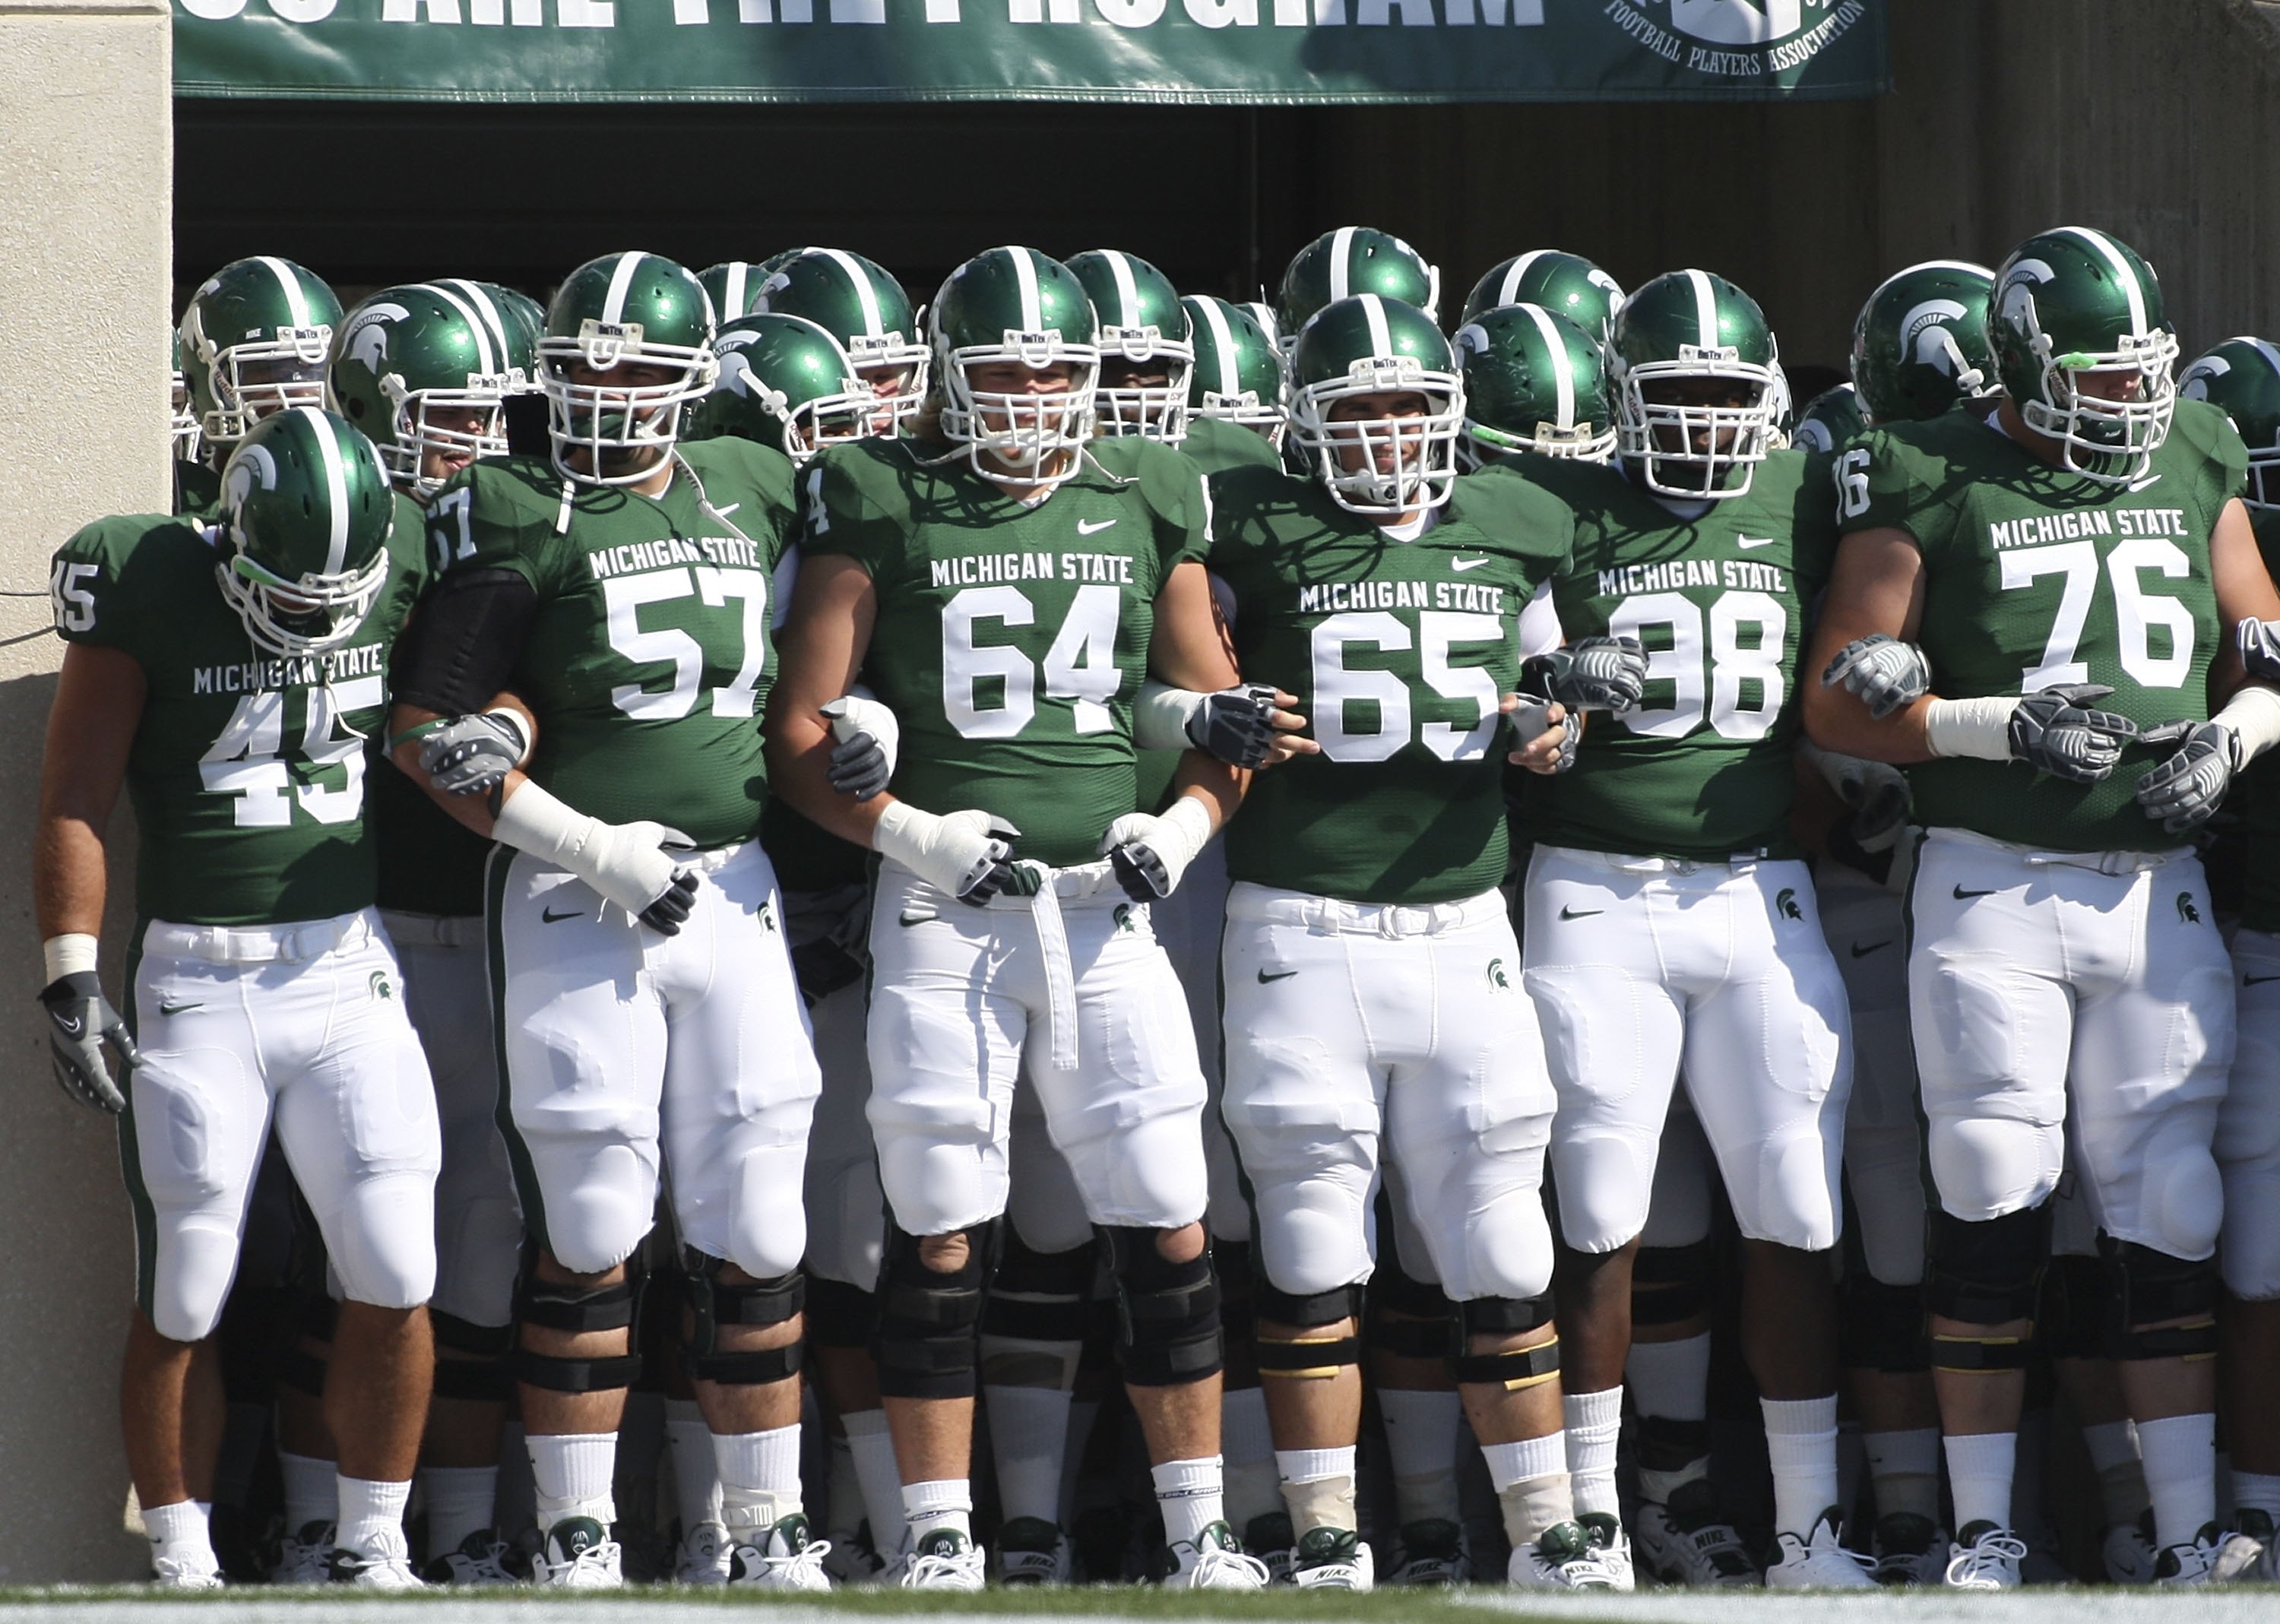 Michigan State Spartans Football 2011 Schedule Game By Game